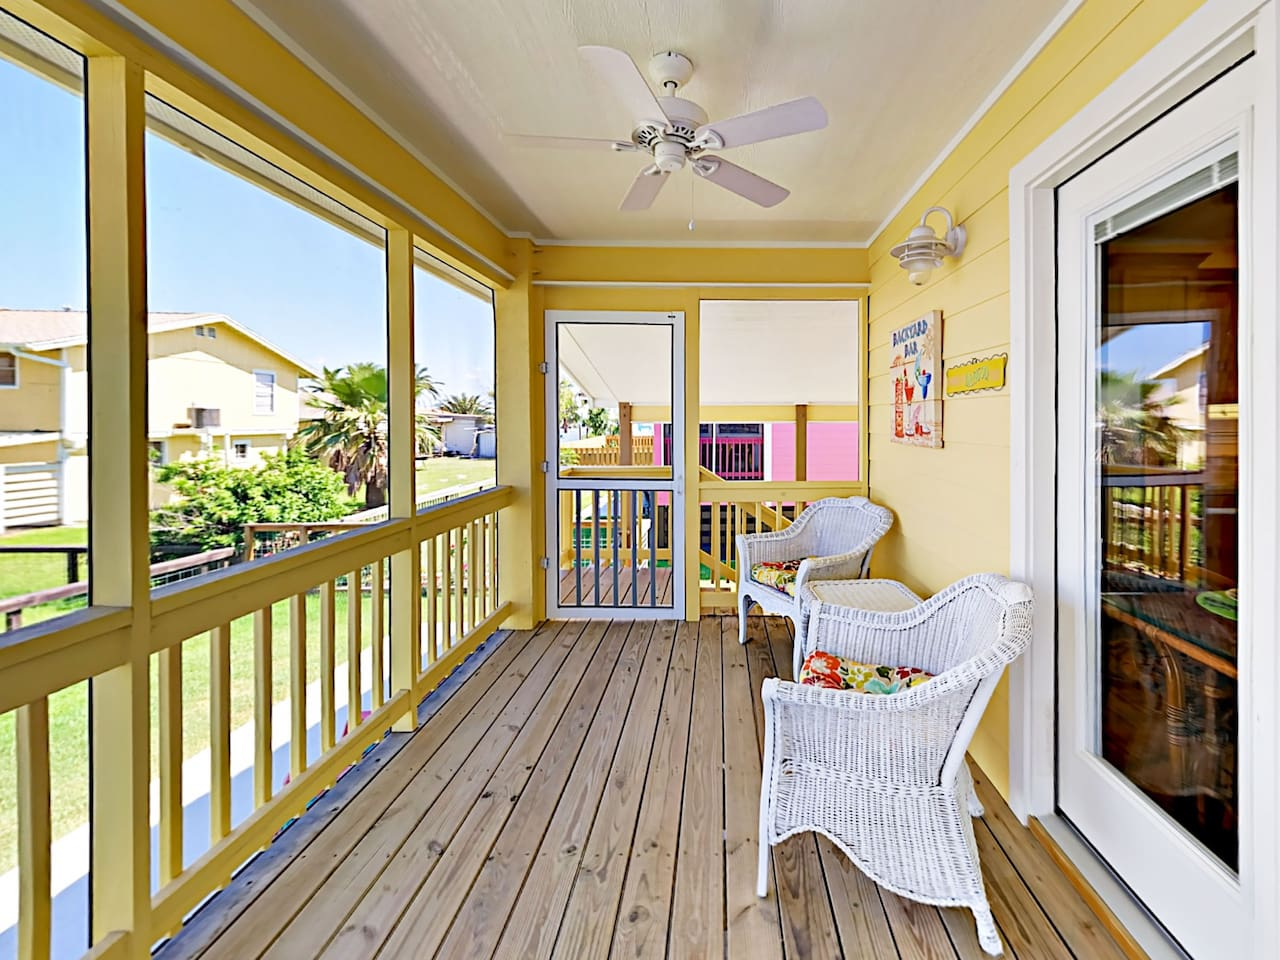 Welcome to Rockport! Retreat to the screened porch overlooking the backyard.